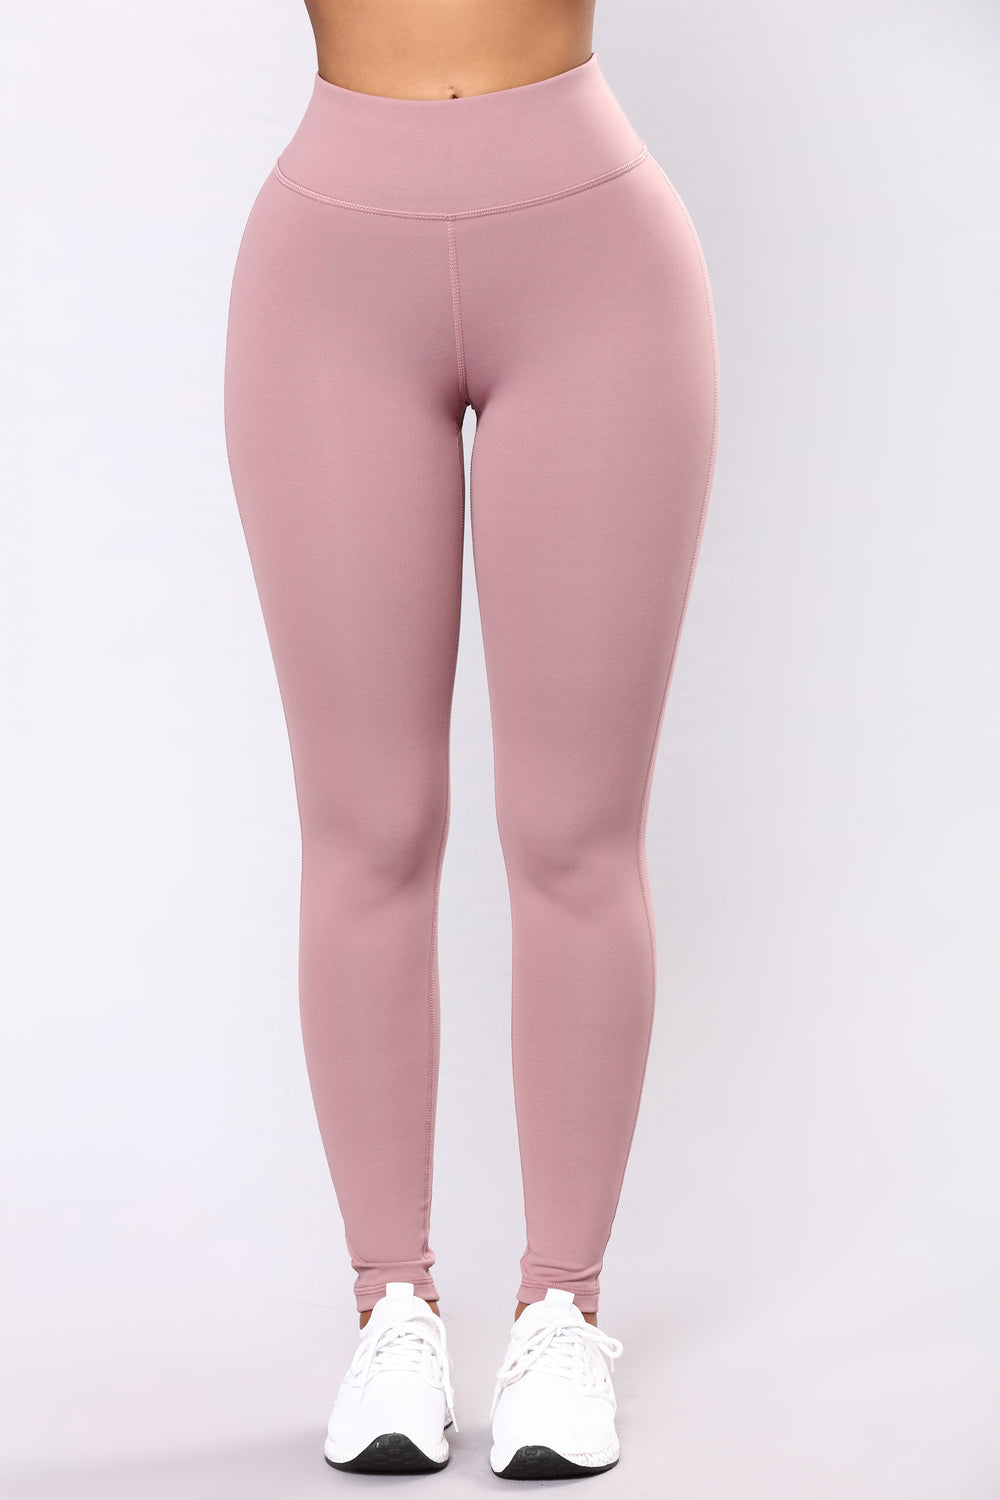 Get Active Pants - Mauve